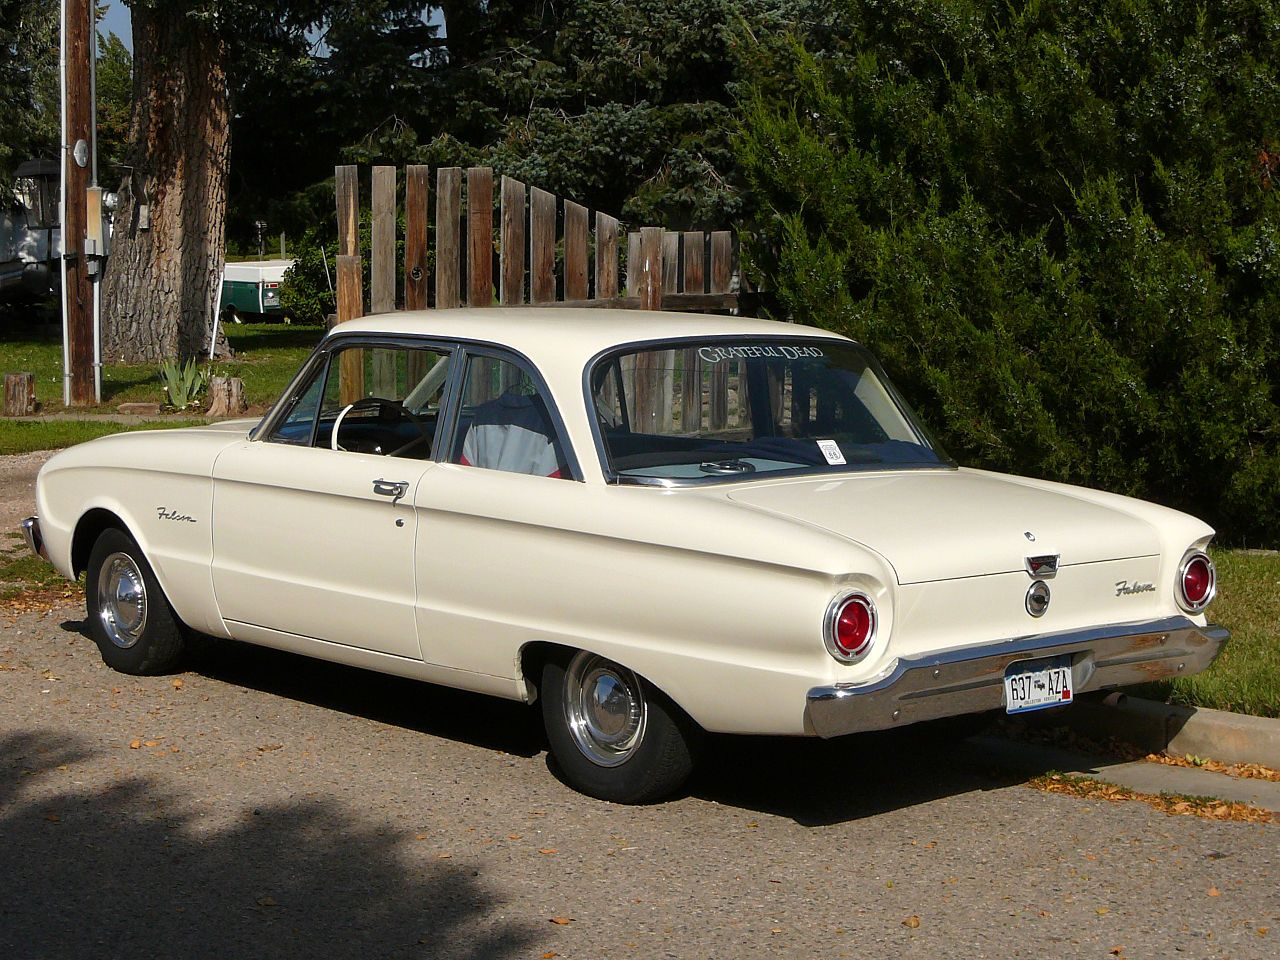 Incredible 1960 Falcon Two Door Sedan Ford Falcon Ford Classic Cars Ibusinesslaw Wood Chair Design Ideas Ibusinesslaworg